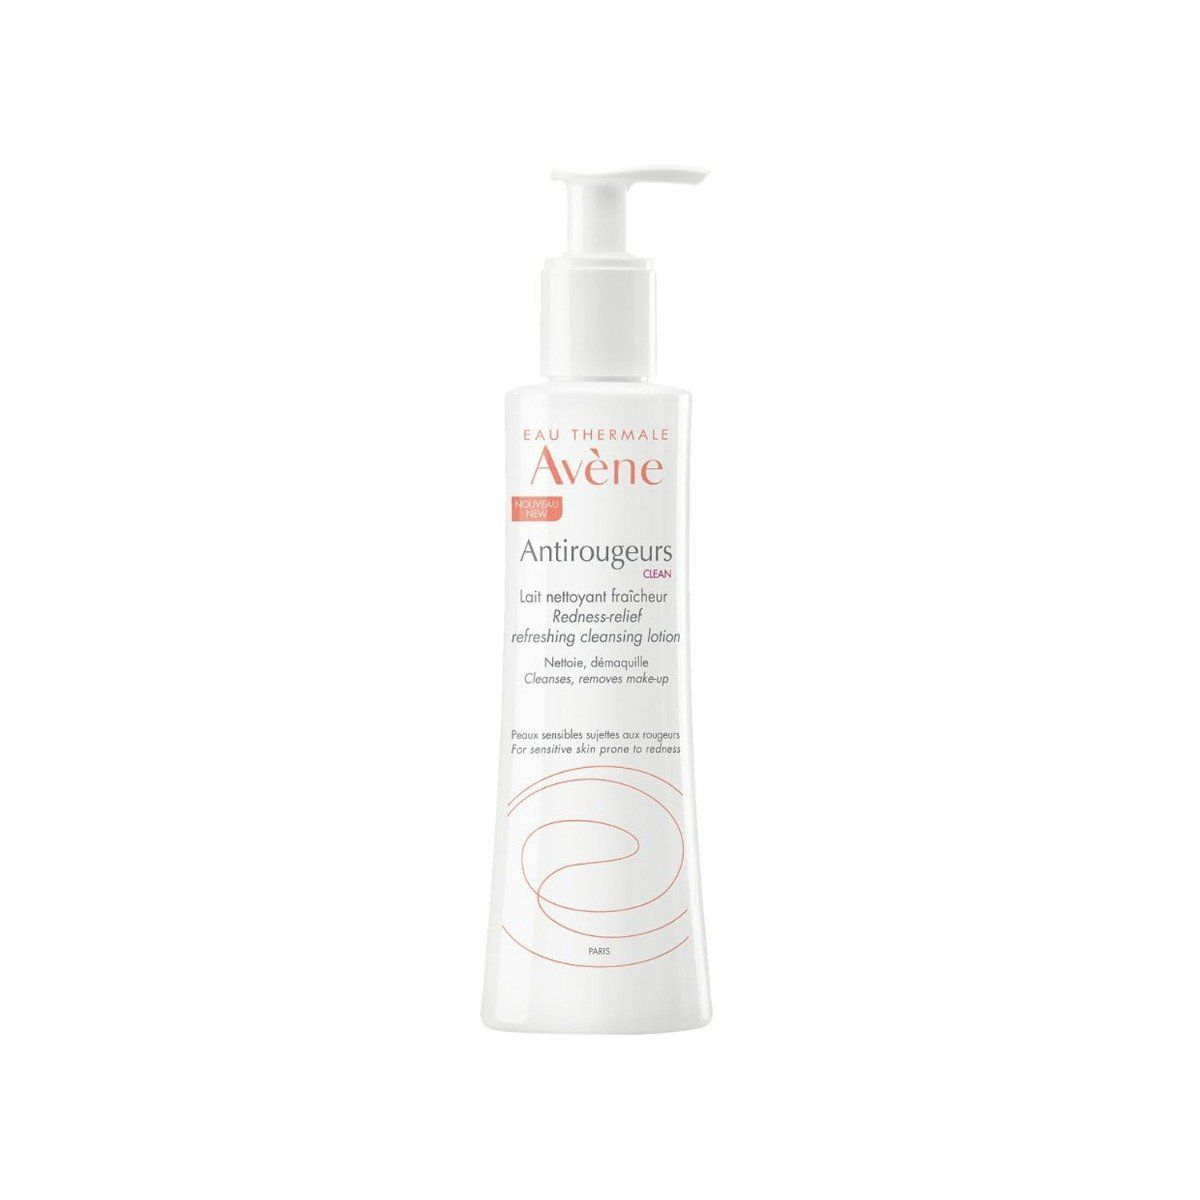 Avene Antirougeurs CLEAN Cleansing Lotion, 200ml